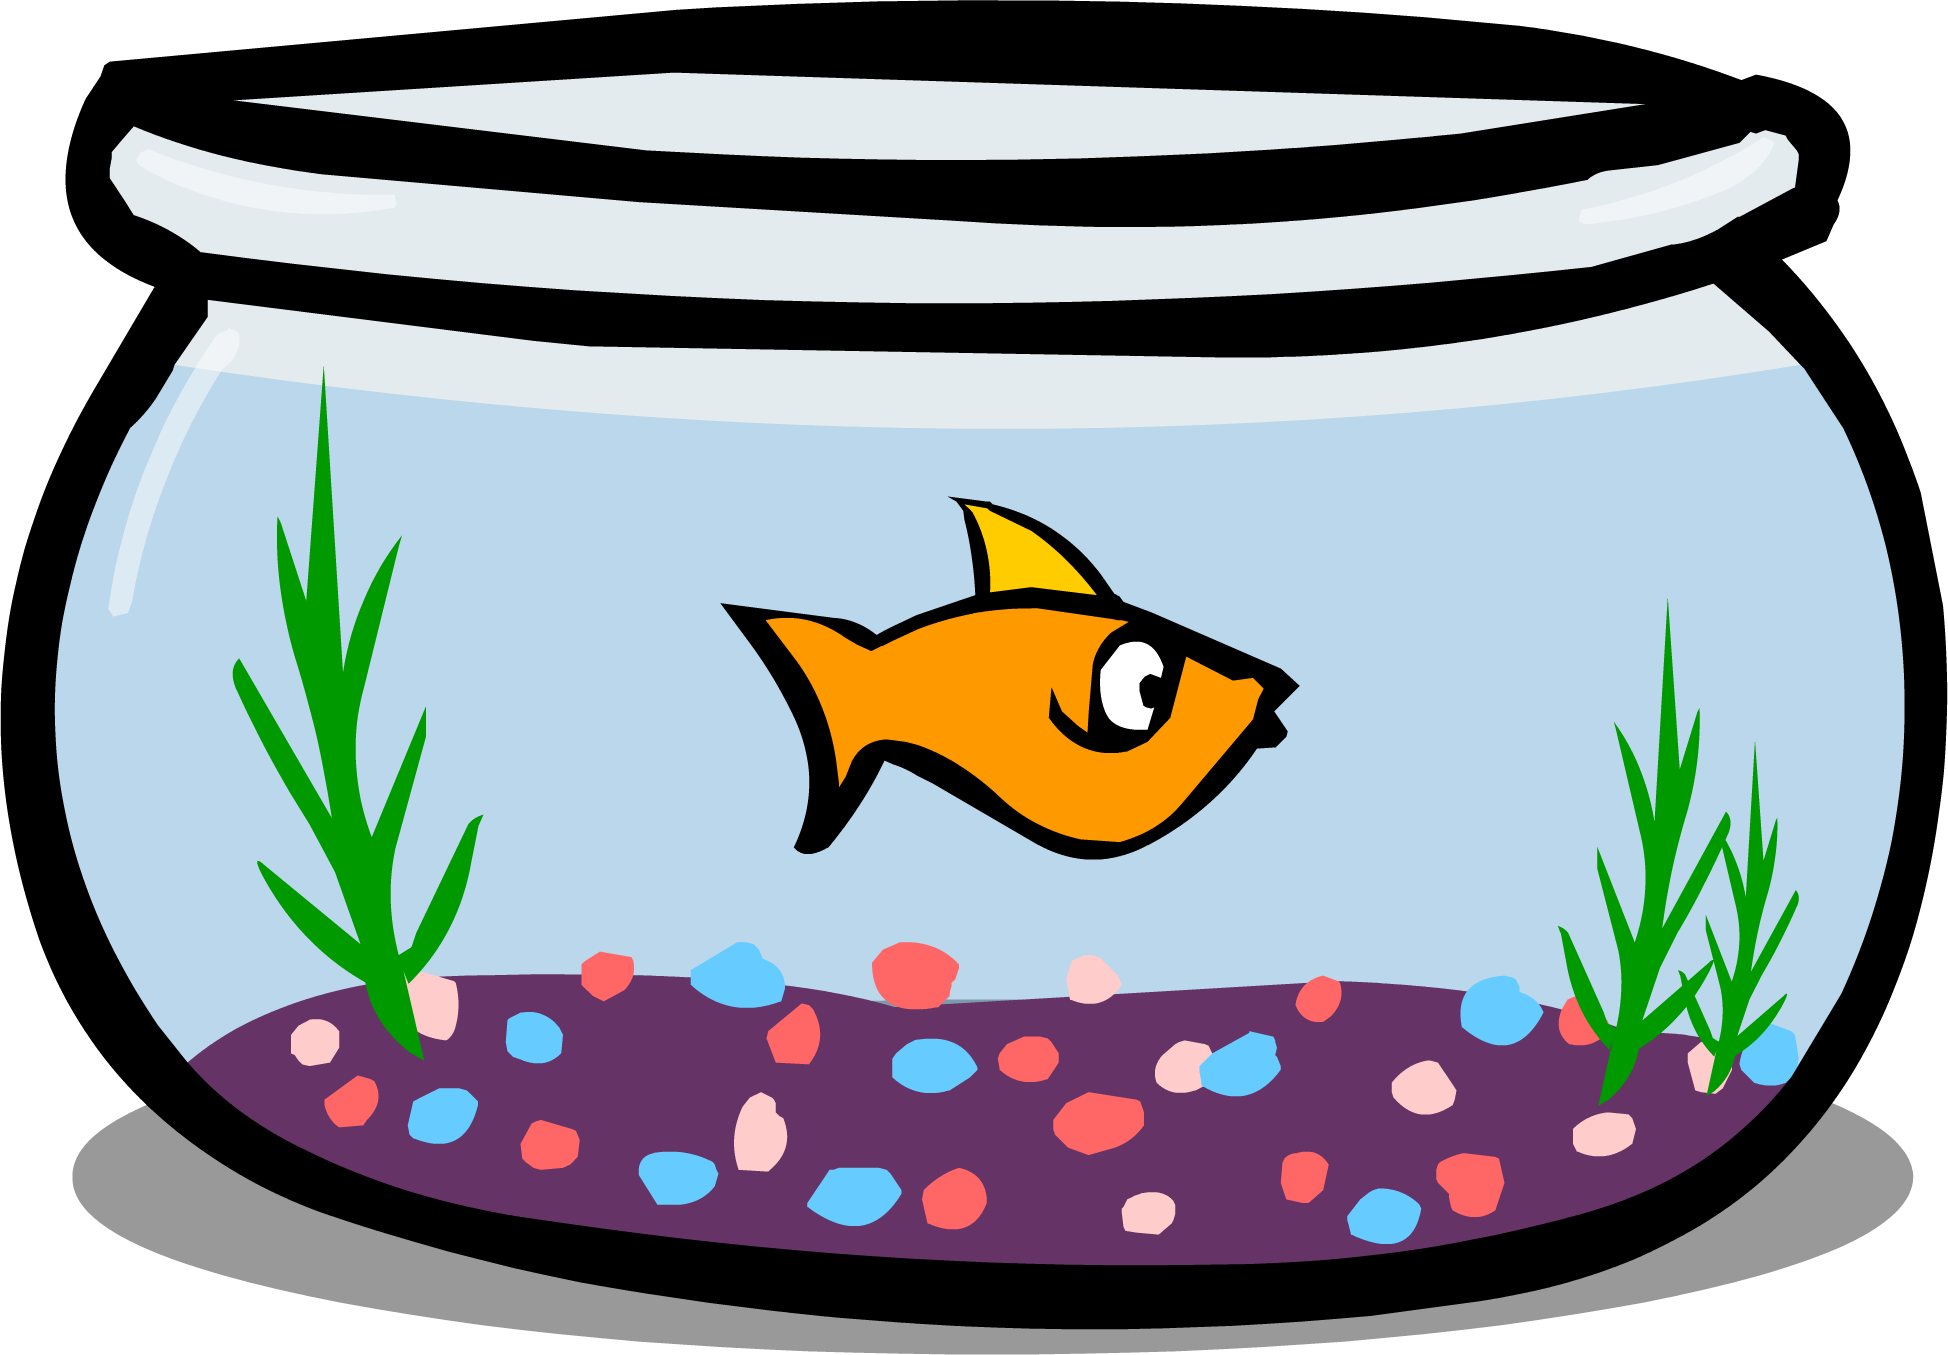 Feeder fish clipart banner black and white download Fishbowl clipart fish feeder, Fishbowl fish feeder Transparent FREE ... banner black and white download